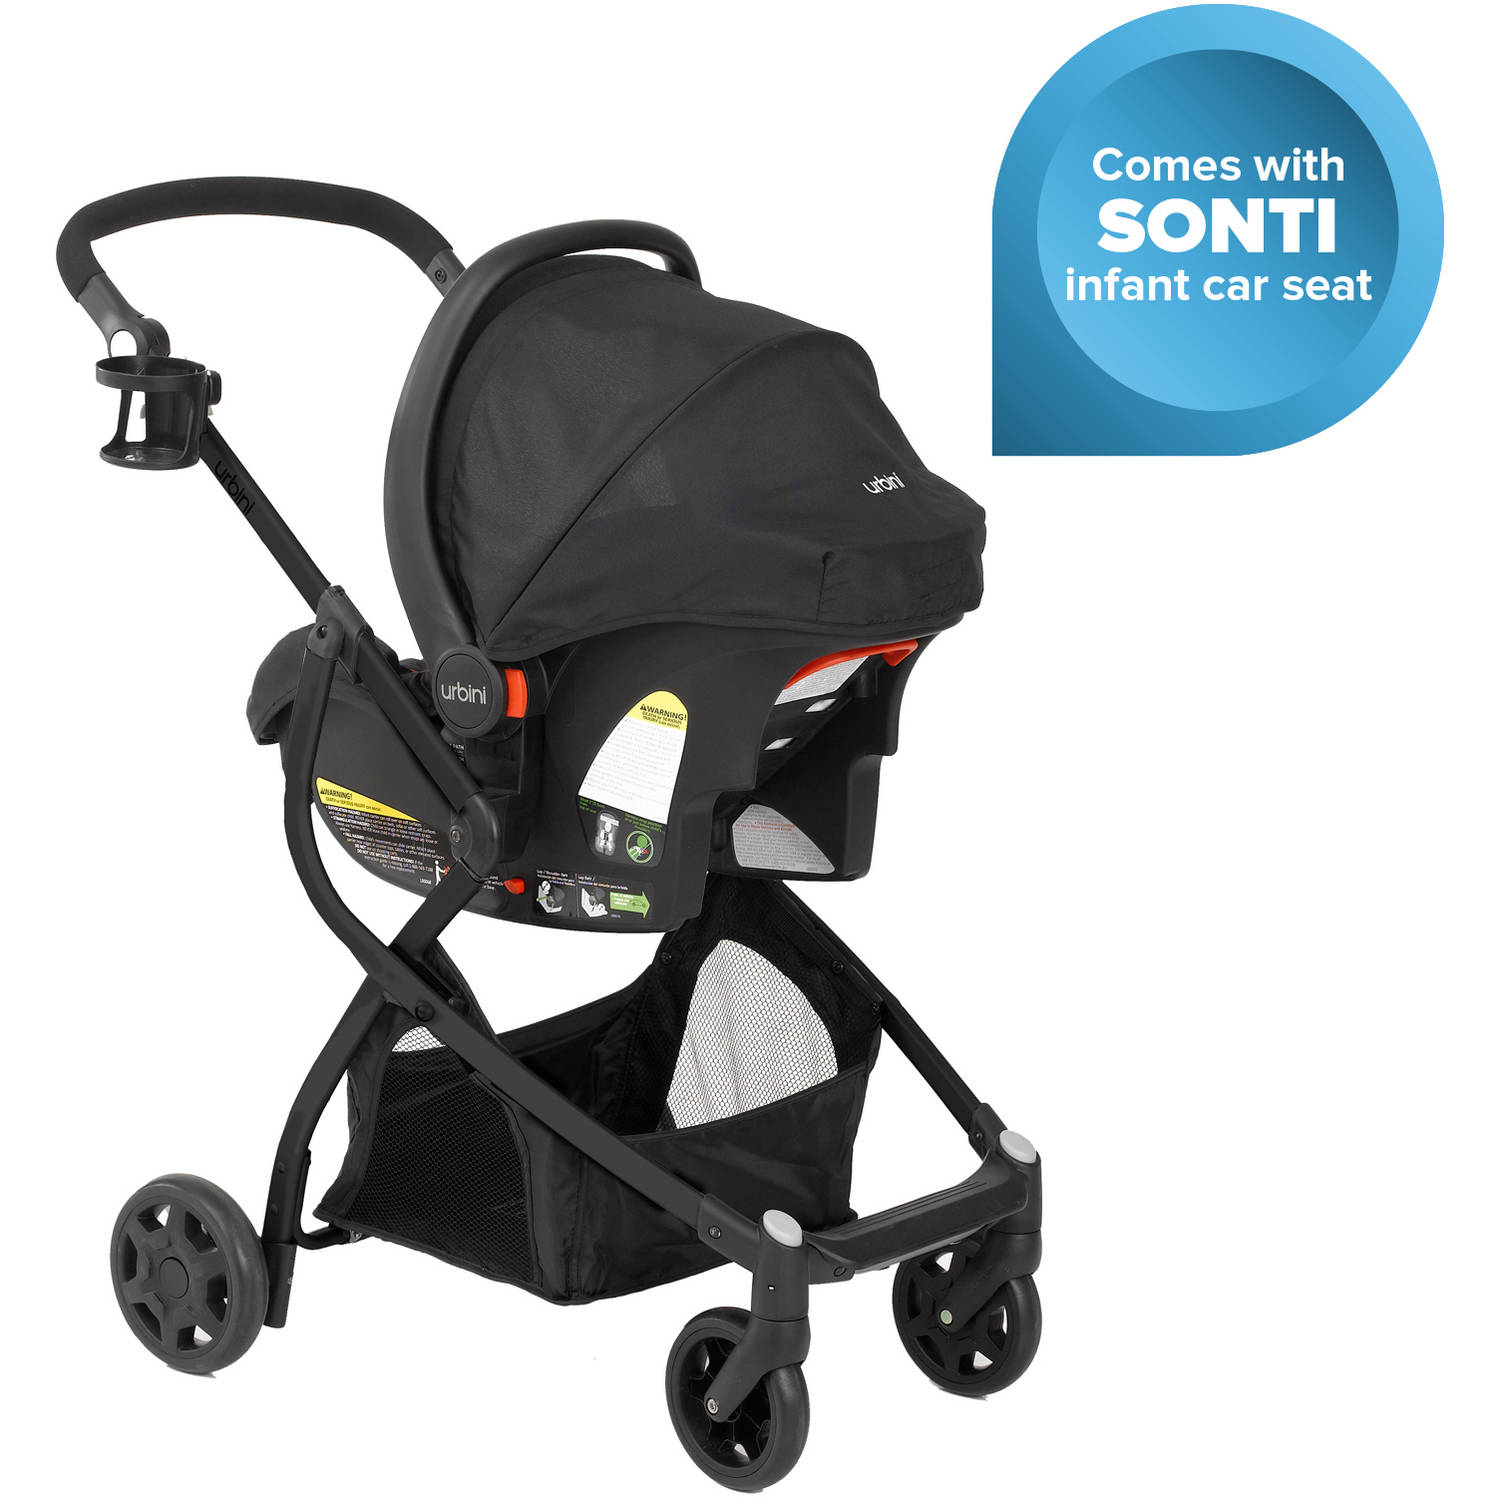 Omni Black Baby Stroller Car Seat 3 in 1 Travel System Infant ...